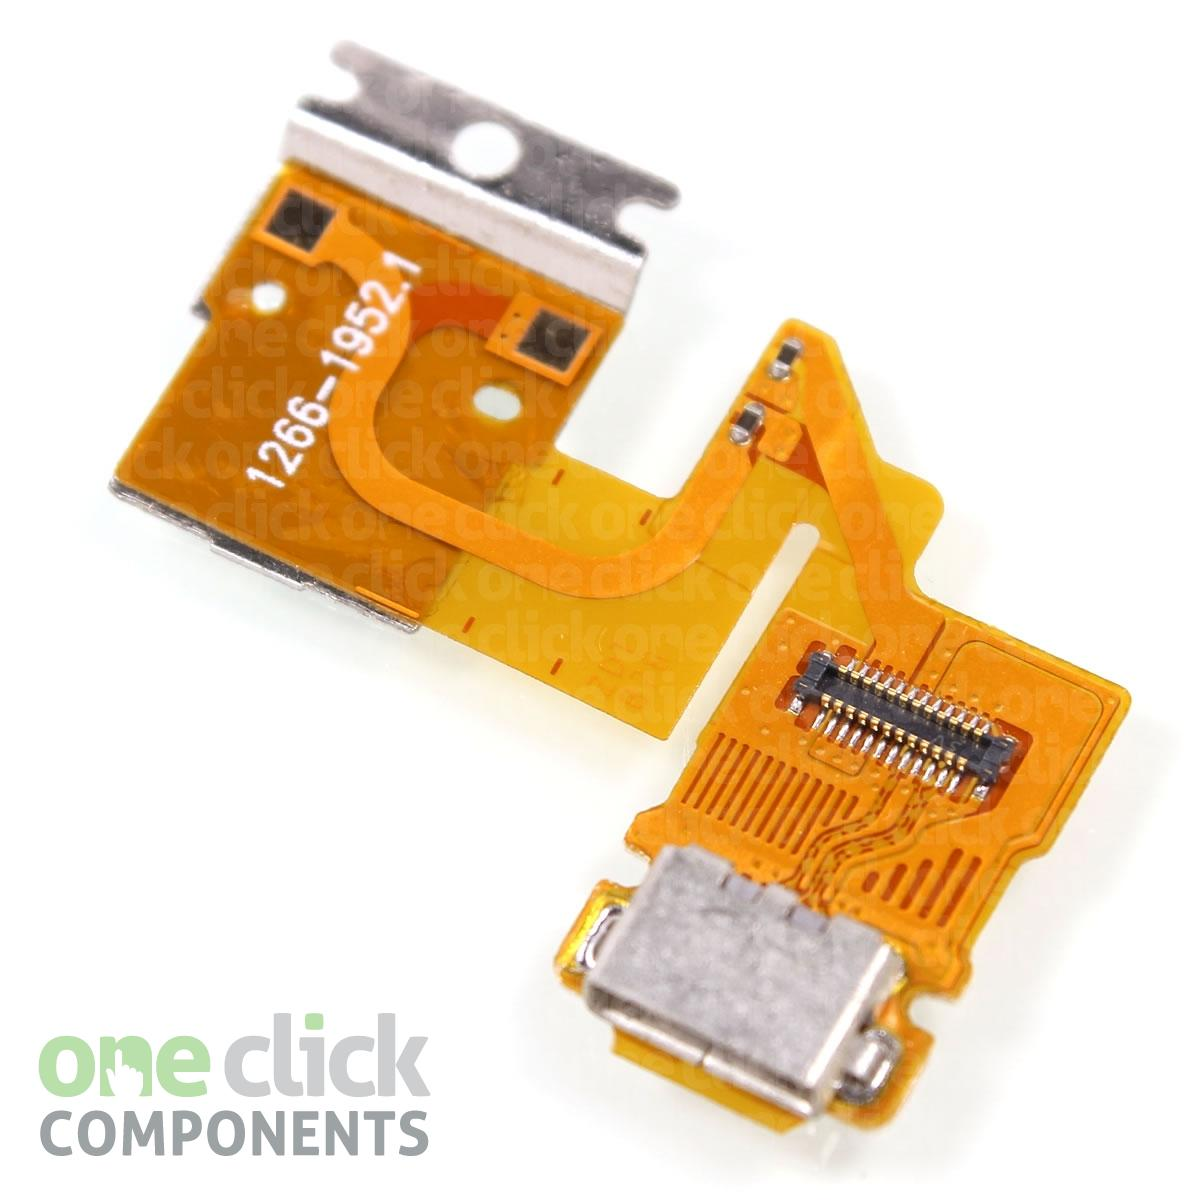 hight resolution of details about usb charging dock port flex cable for sony xperia tablet z sgp311 sgp312 sgp321